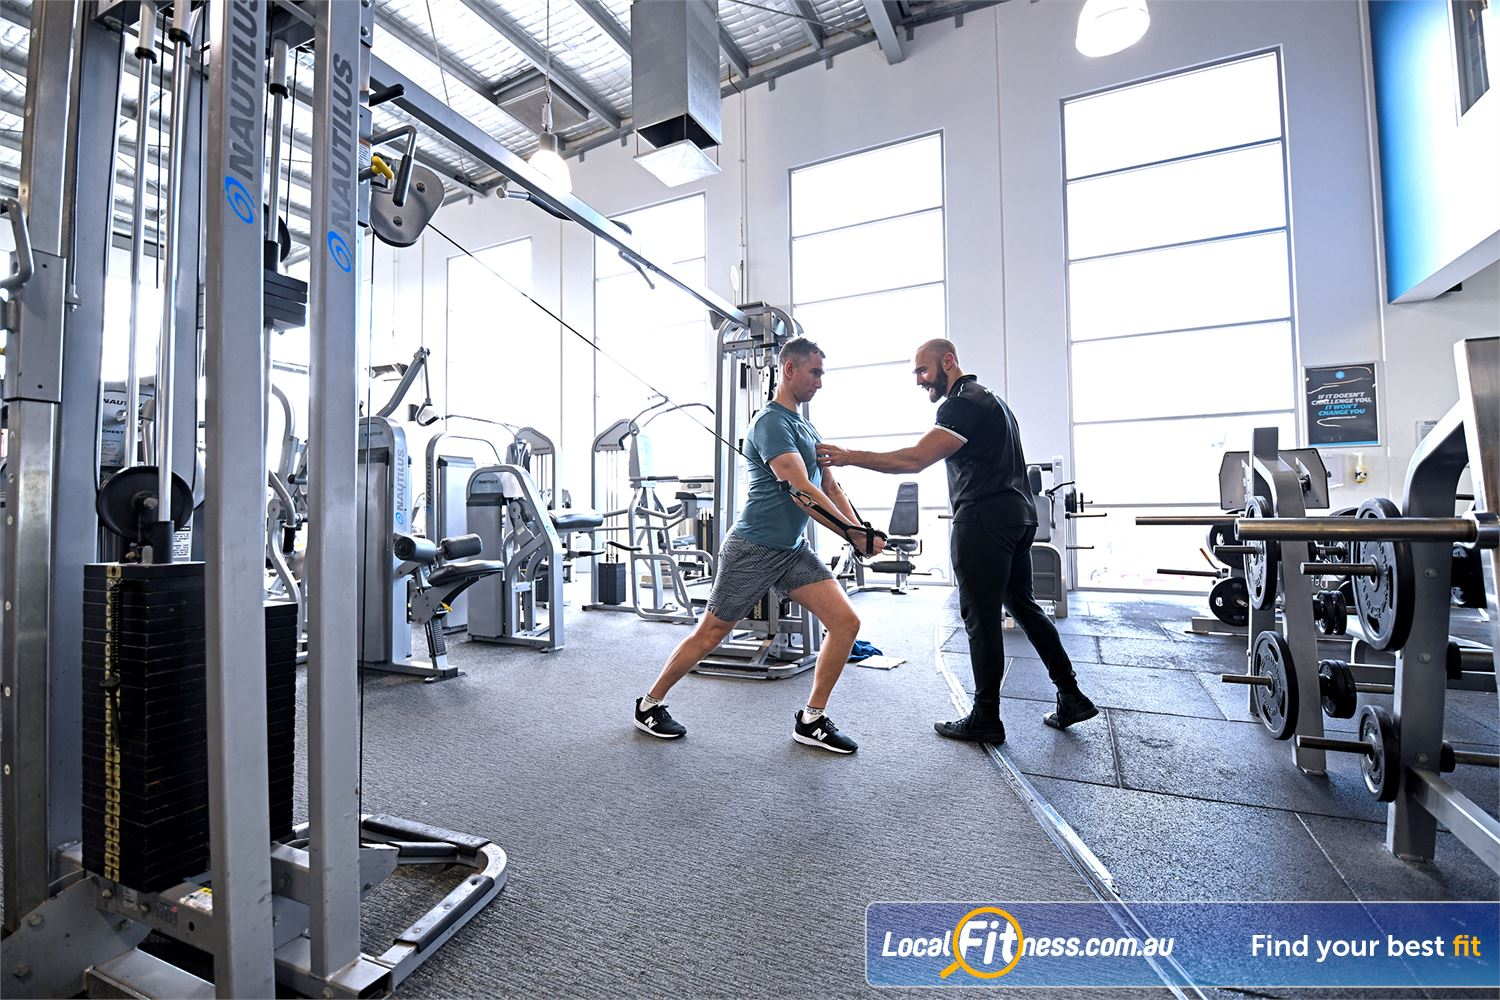 Goodlife Health Clubs Geelong Our Geelong personal trainers can show you the correct way to train.